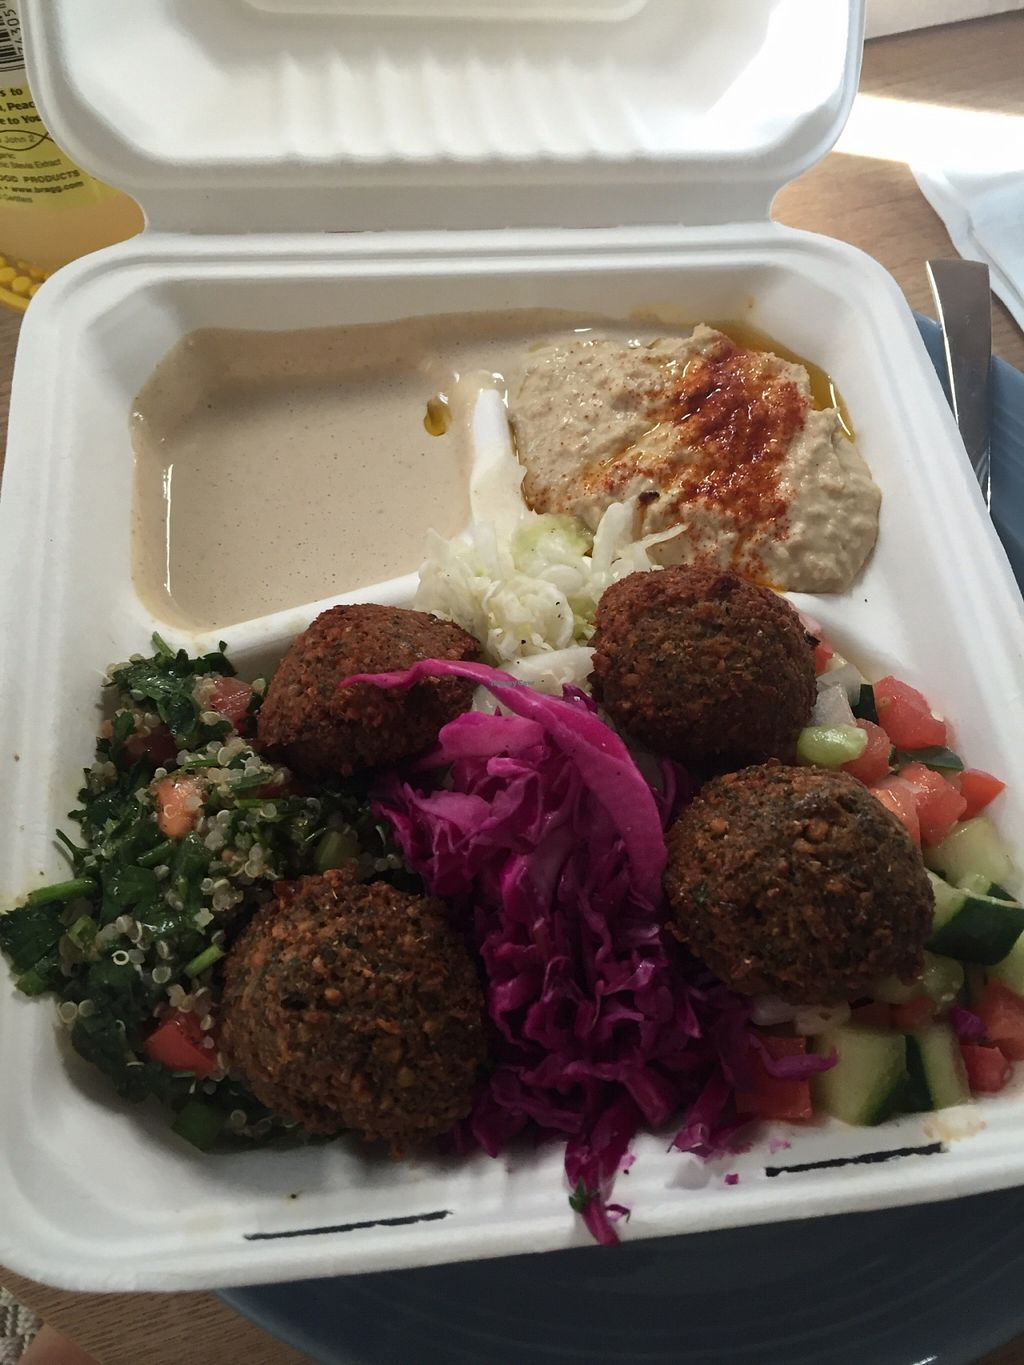 """Photo of Fala Bar  by <a href=""""/members/profile/maplemag"""">maplemag</a> <br/>Falafel plate <br/> December 10, 2015  - <a href='/contact/abuse/image/46290/127909'>Report</a>"""